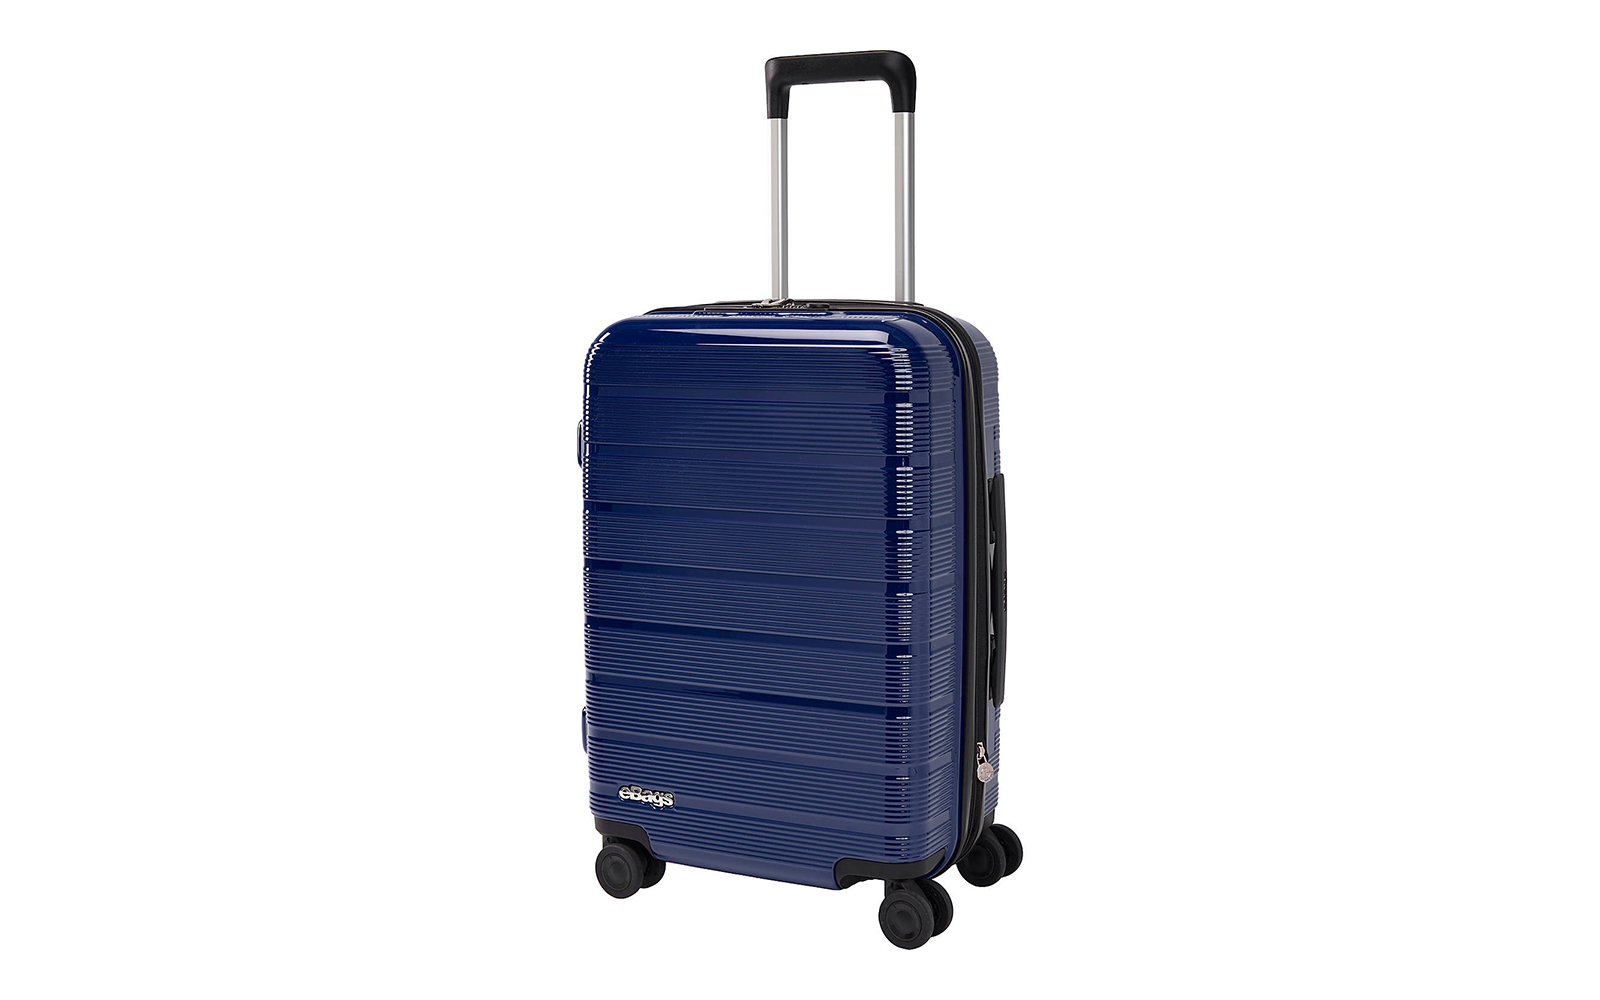 eBags Fortis Pro Carry-On Spinner